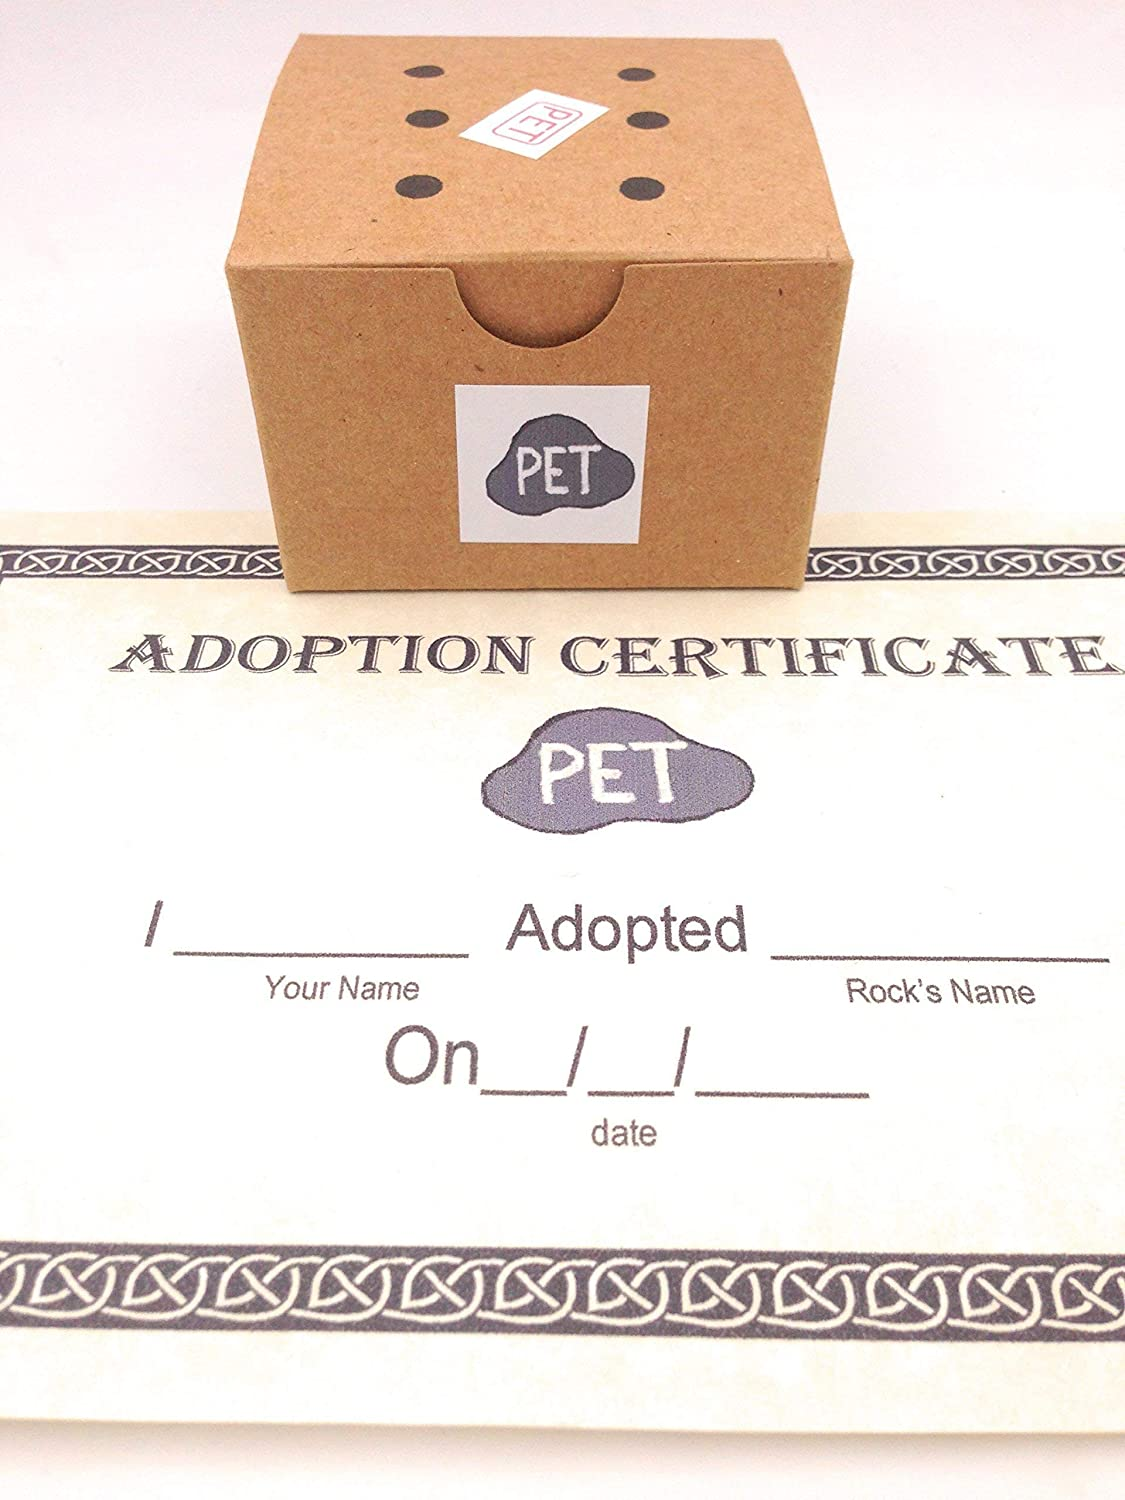 Amazon rock pet kit with adoption certificate handmade solutioingenieria Image collections